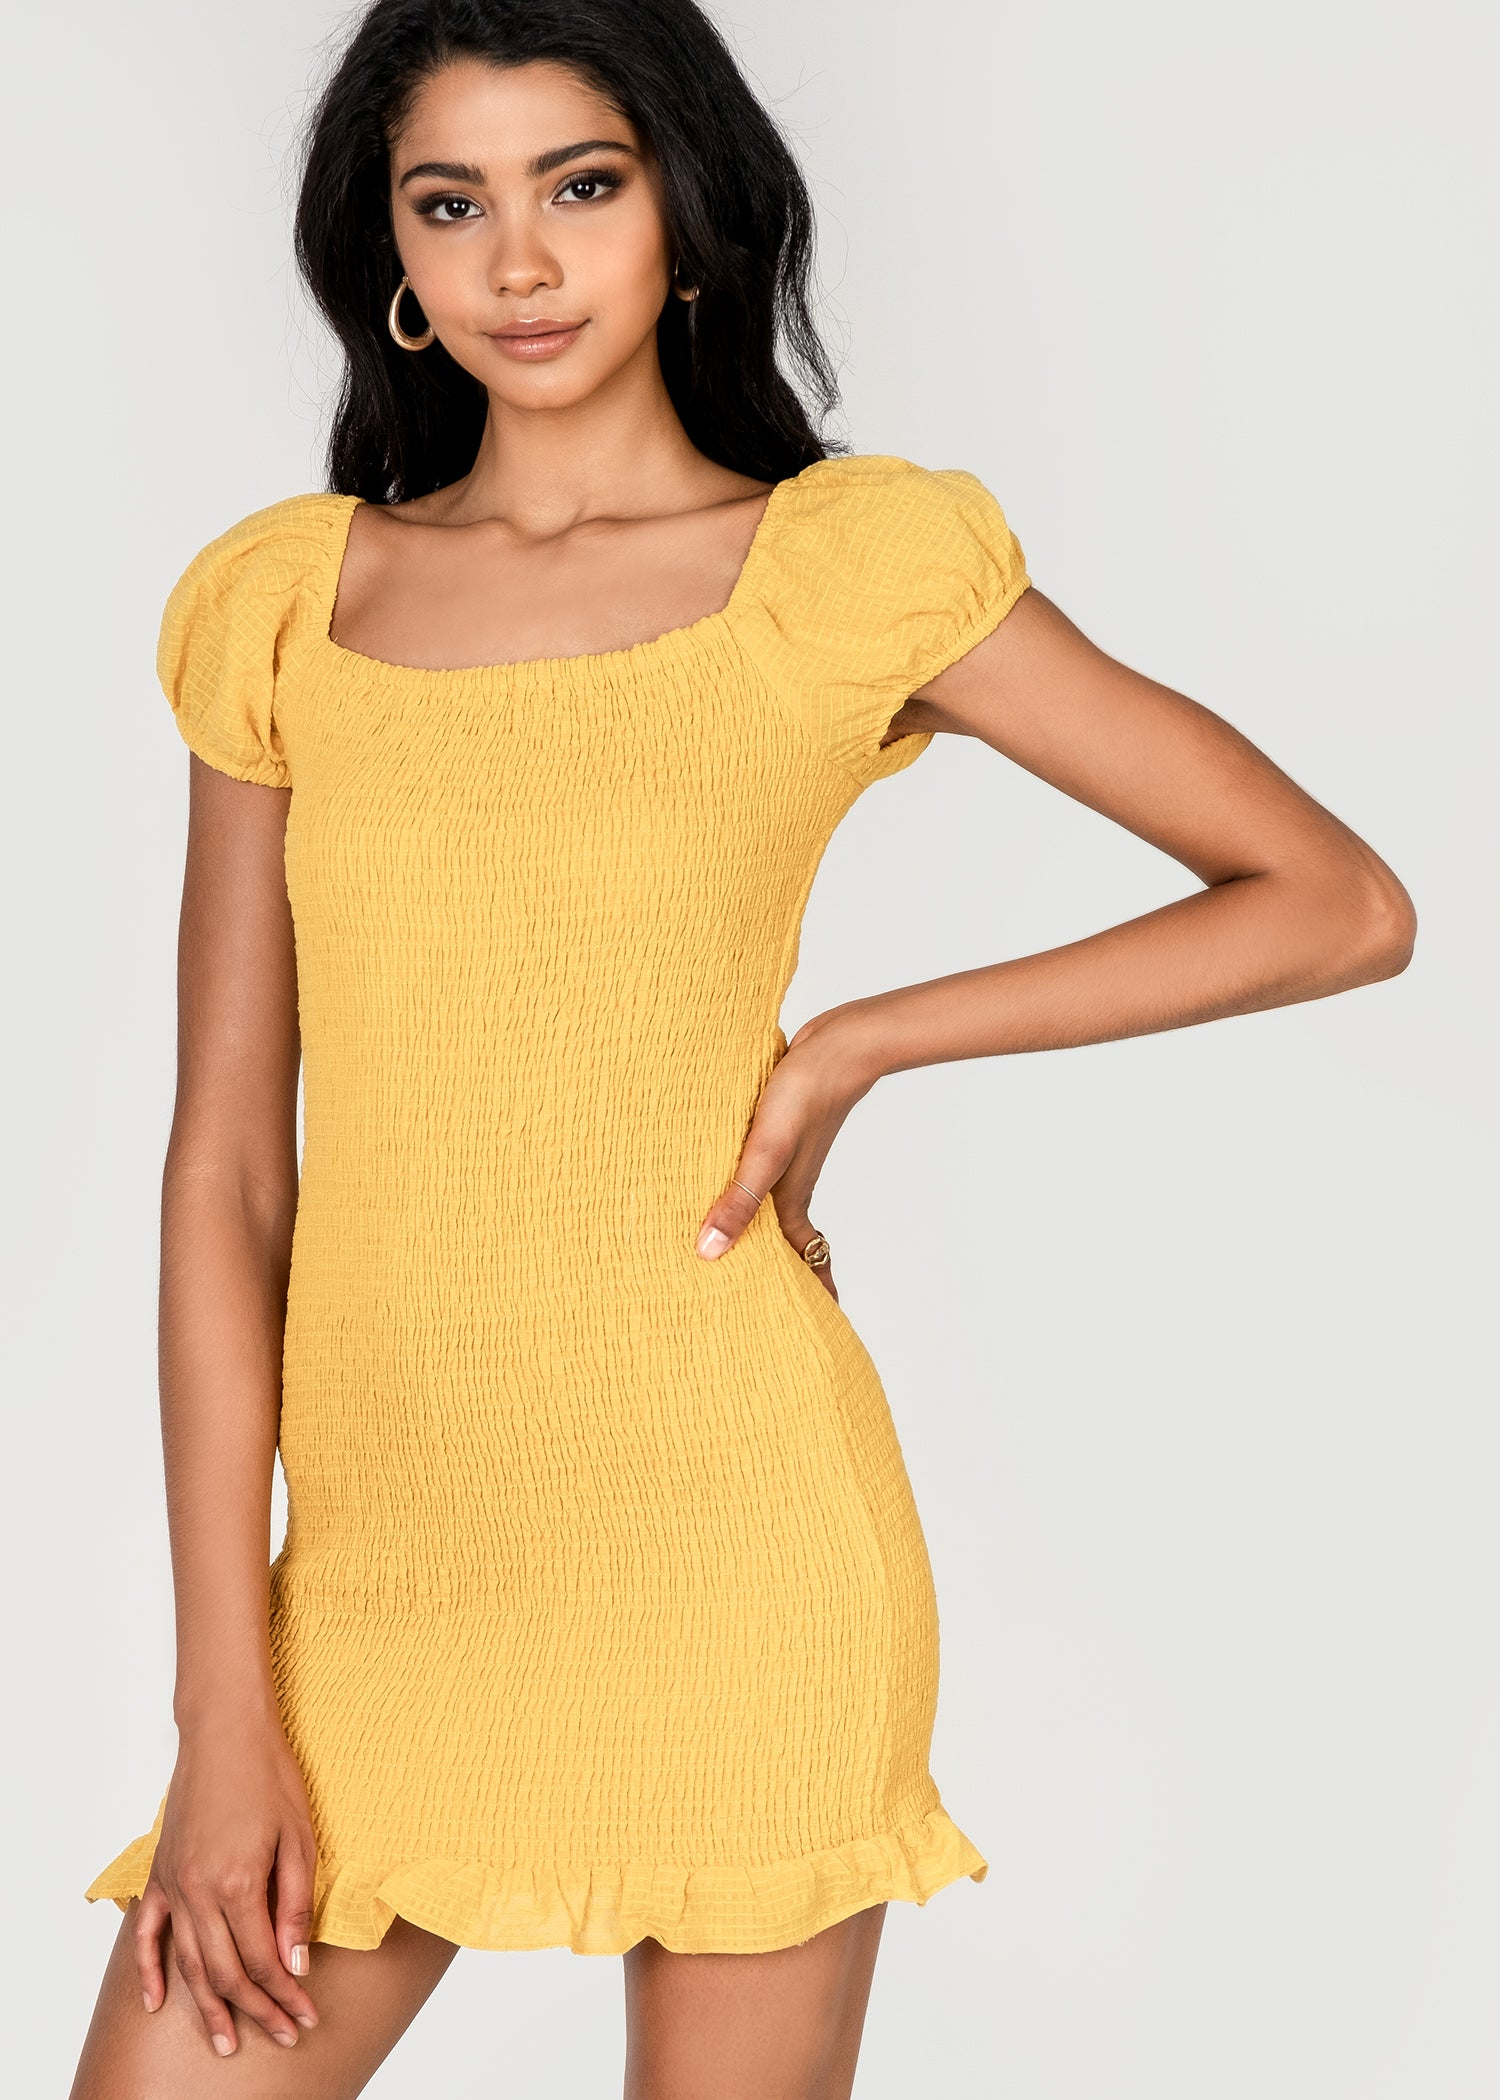 Daffodil Mini Dress